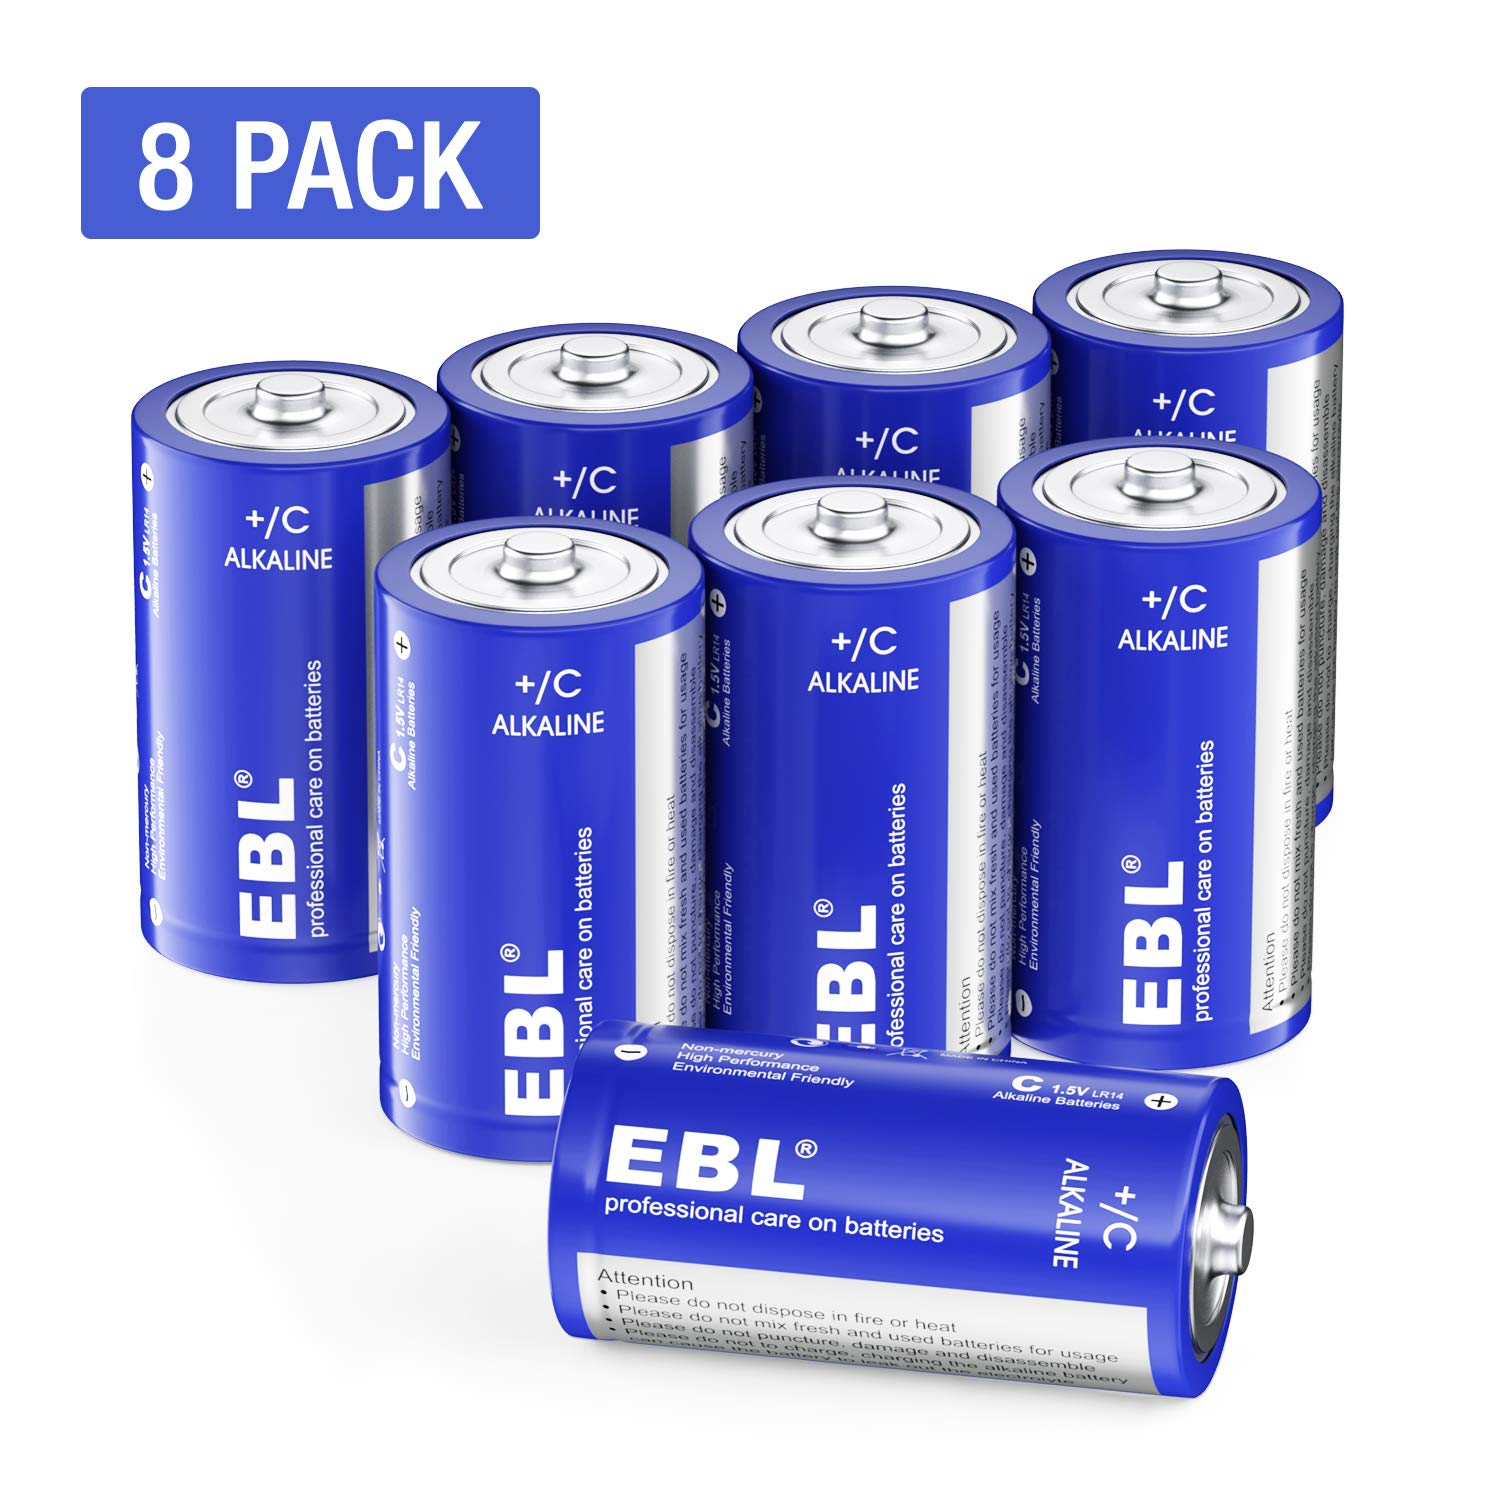 EBL C Batteries Alkaline C Batteries - Durable and Lasting Performance Alkaline Batteries for Toys, Remotes, Flashlights, Camping Lights, Electronic Devices (8 Pack)